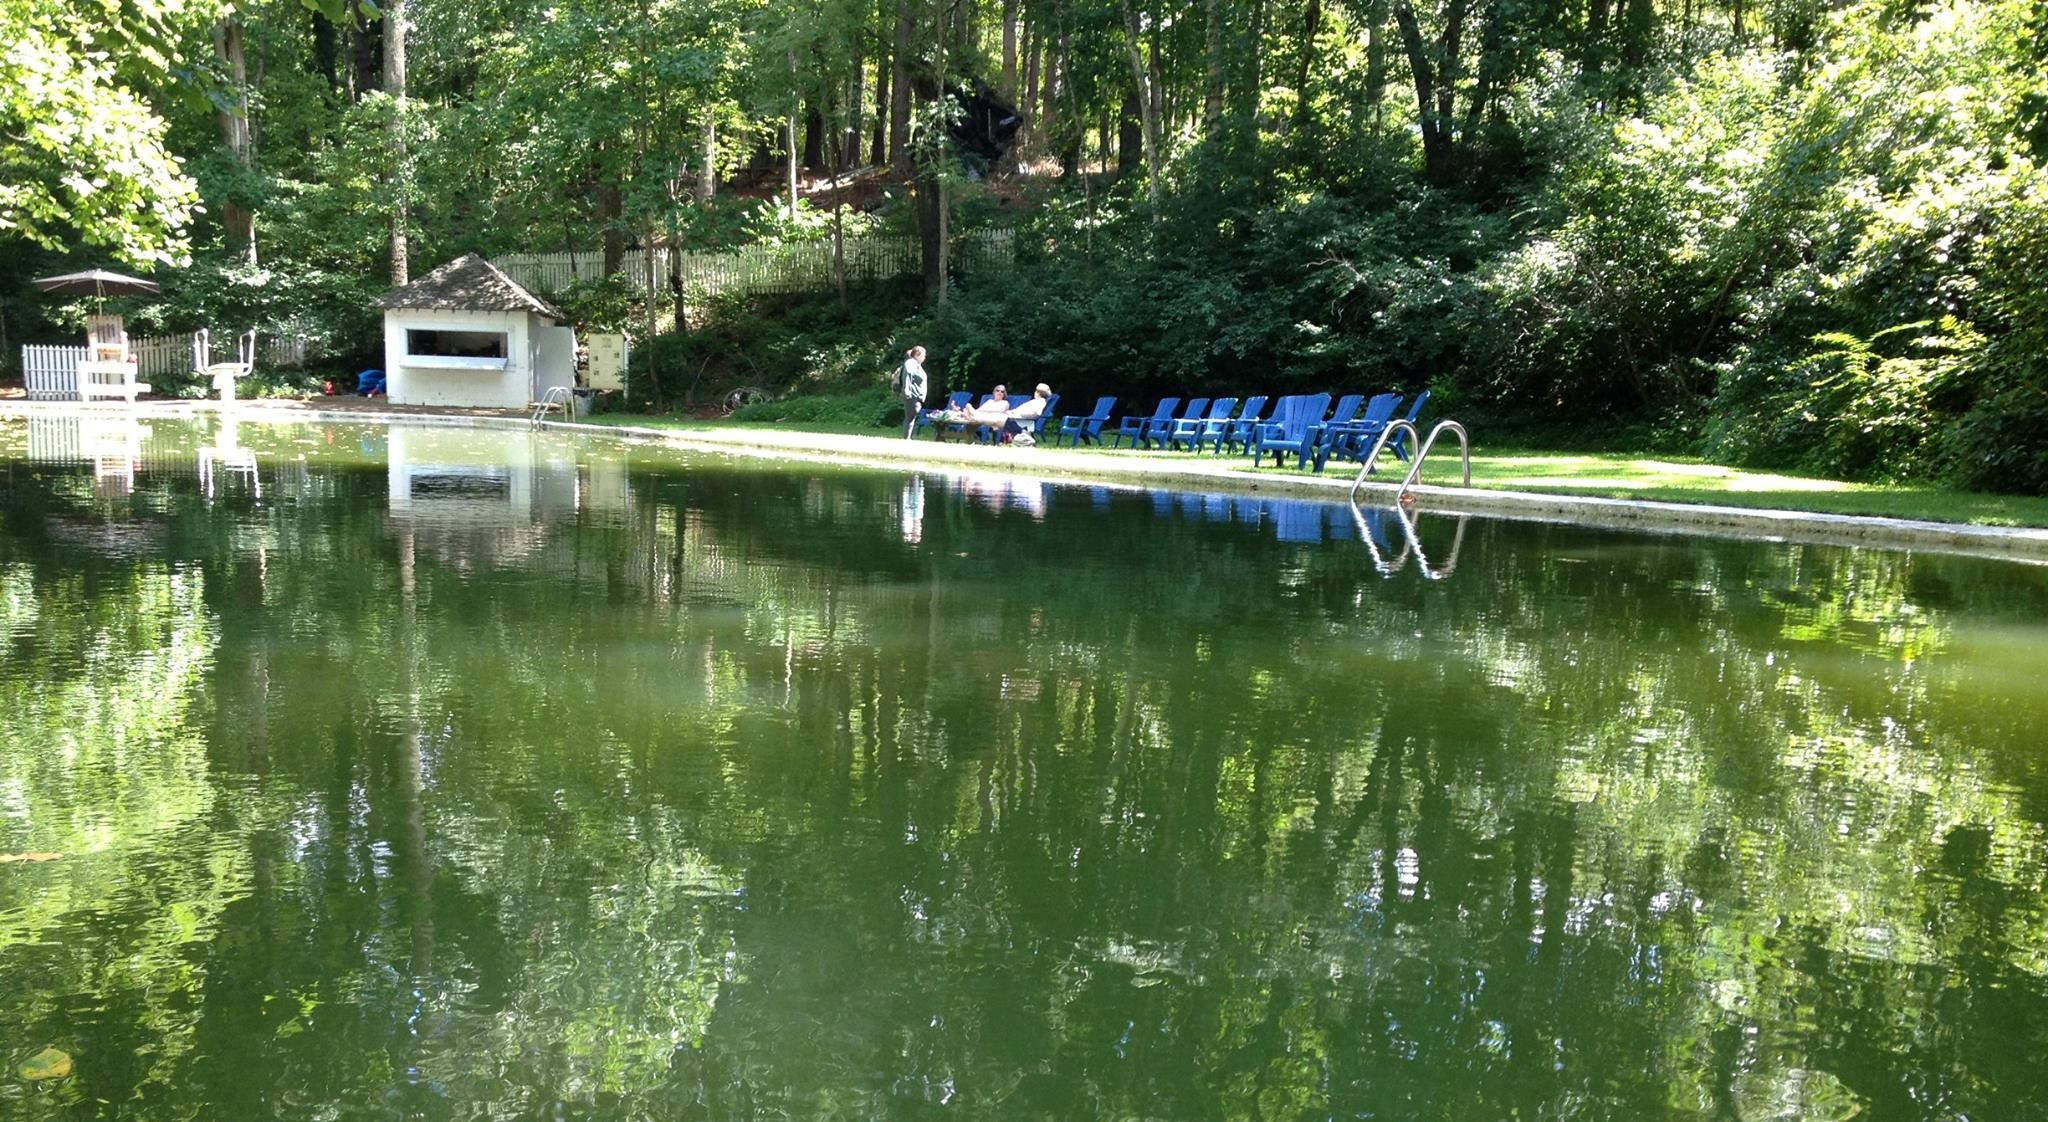 The Blue Ridge Swim Club Features An Incredible Spring Fed